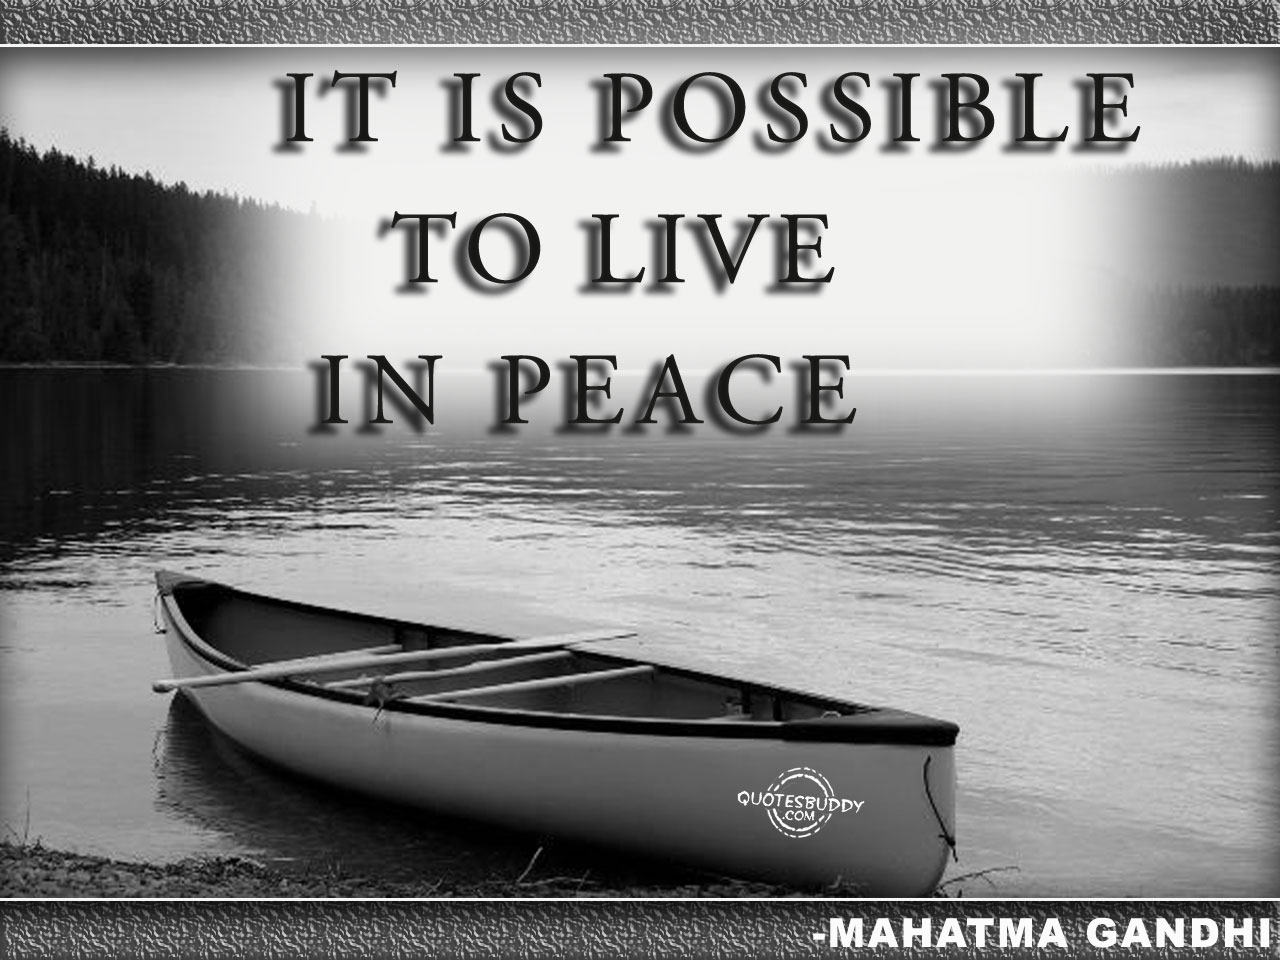 It is possible to live in peace - Mahatma Gandhi